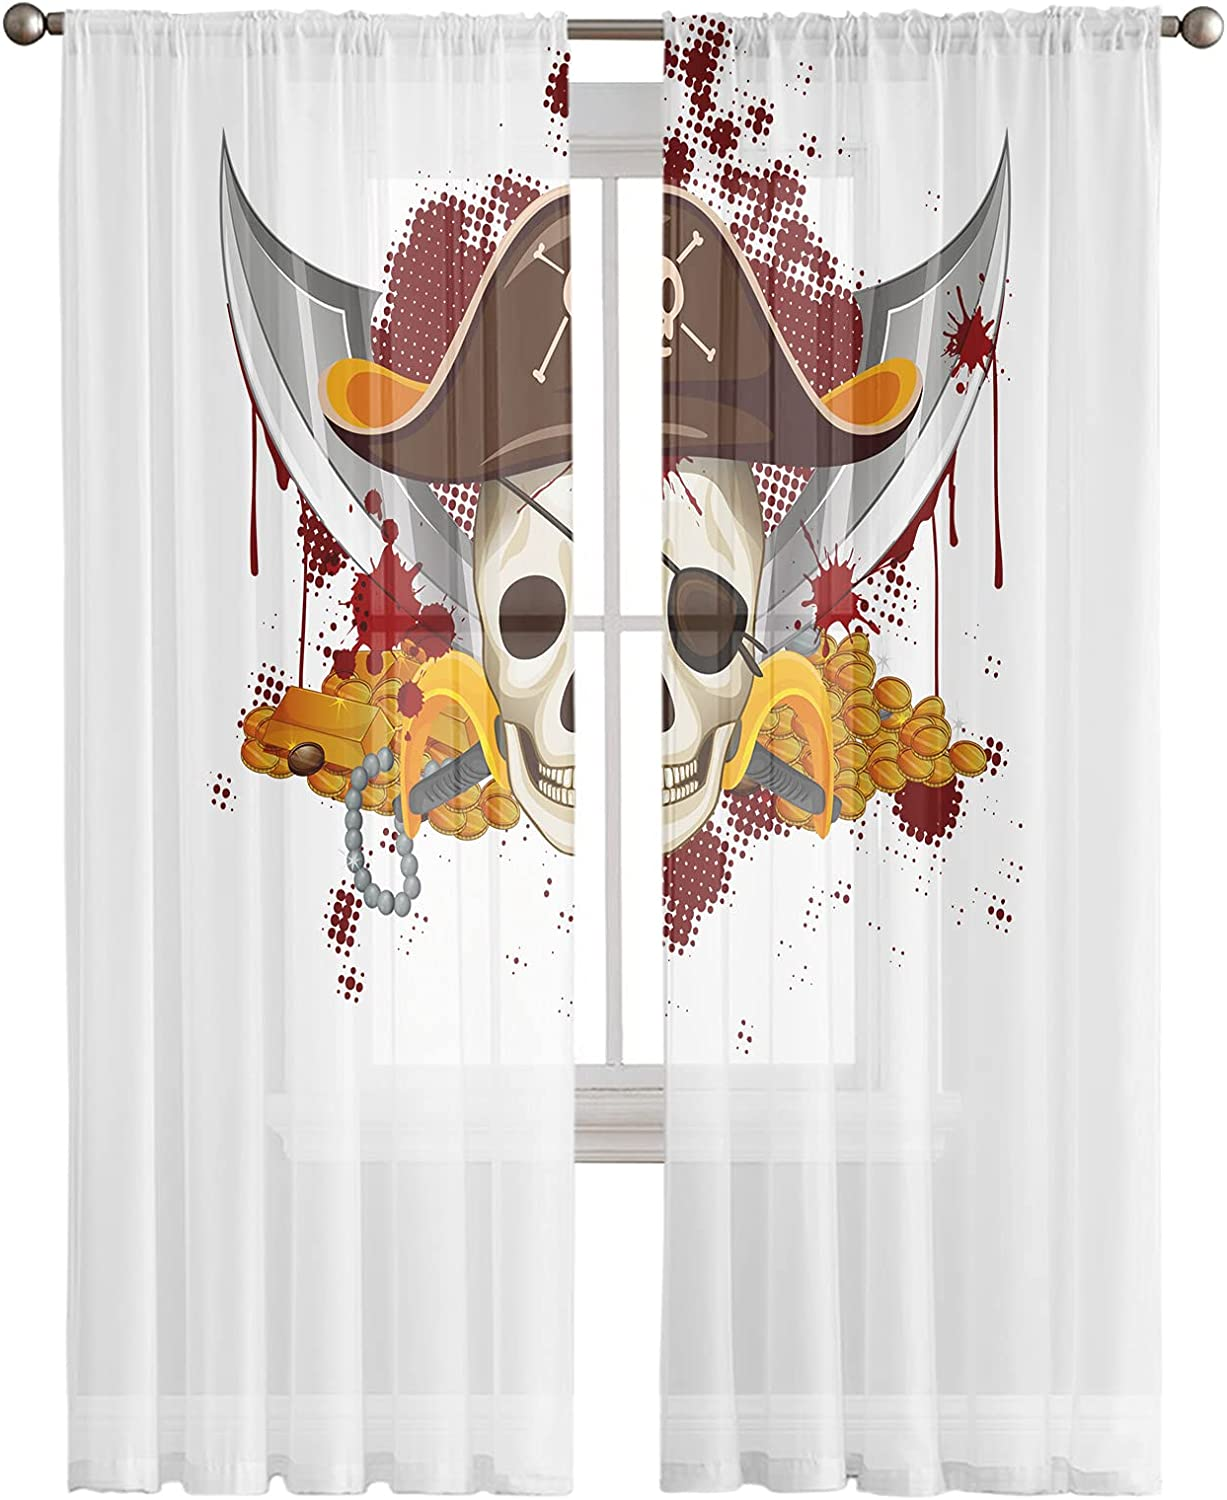 Sheer Curtains 96 Inches Long 2 Voile Sale Semi Pirate New arrival Panels